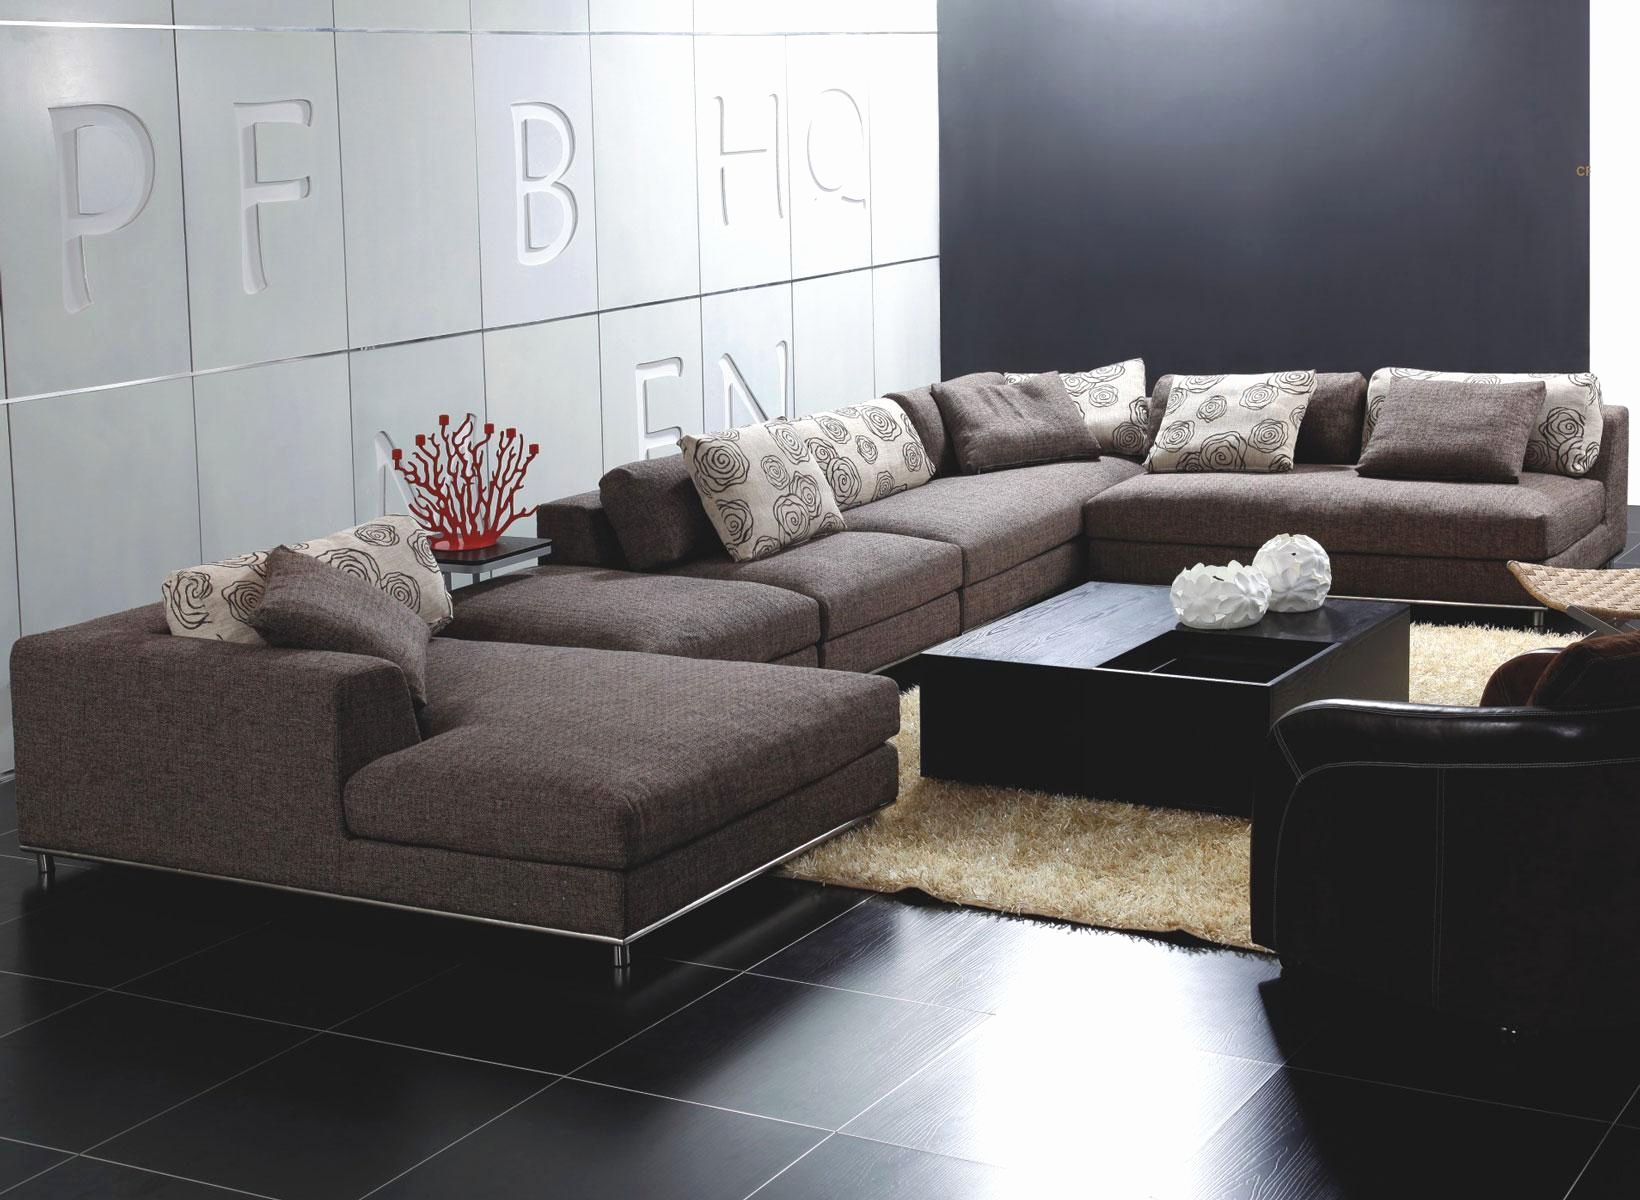 New Contemporary Loveseat Sofas Shot Living Room Sectional Sofa Modern Leather